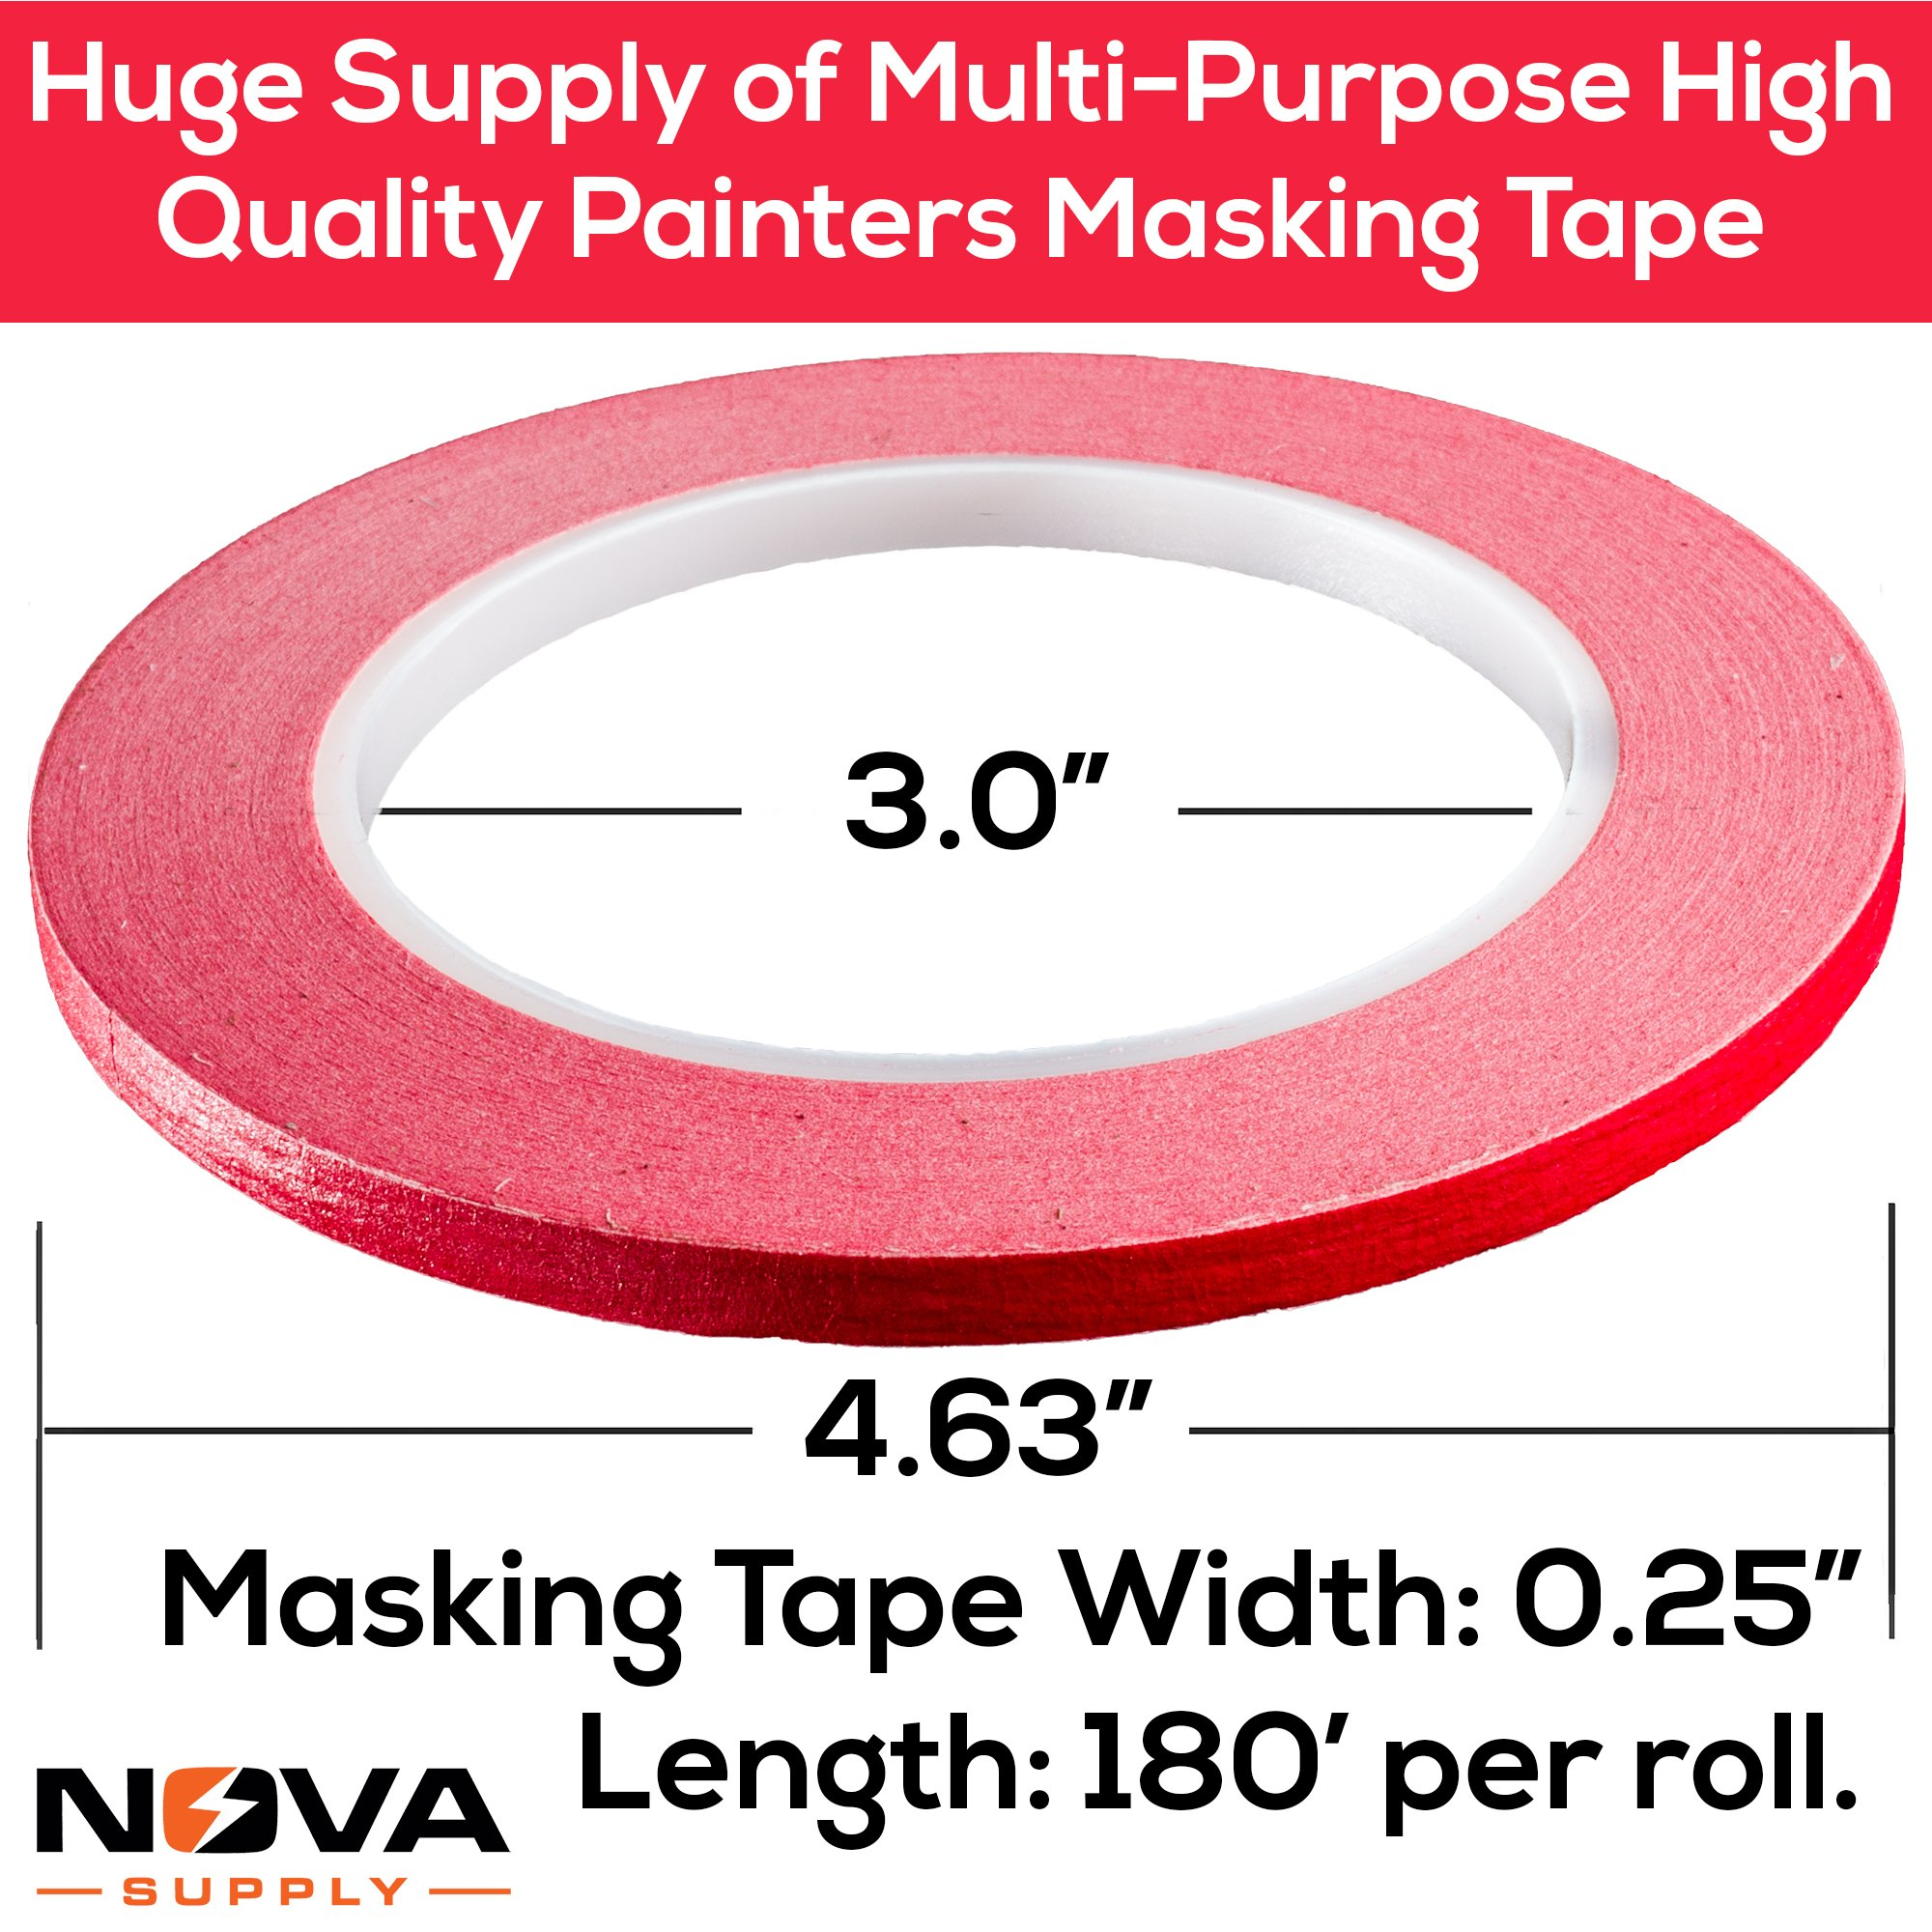 Nova Supplys 1/4in x 60yd Masking Tape, 8 Color Value Pack. Professional Grade Adhesive is Super Thin, Conforms to Irregular Surfaces, Is Easy to Tear & Release for Labeling, Painting, & Decorating. by Nova (Image #2)